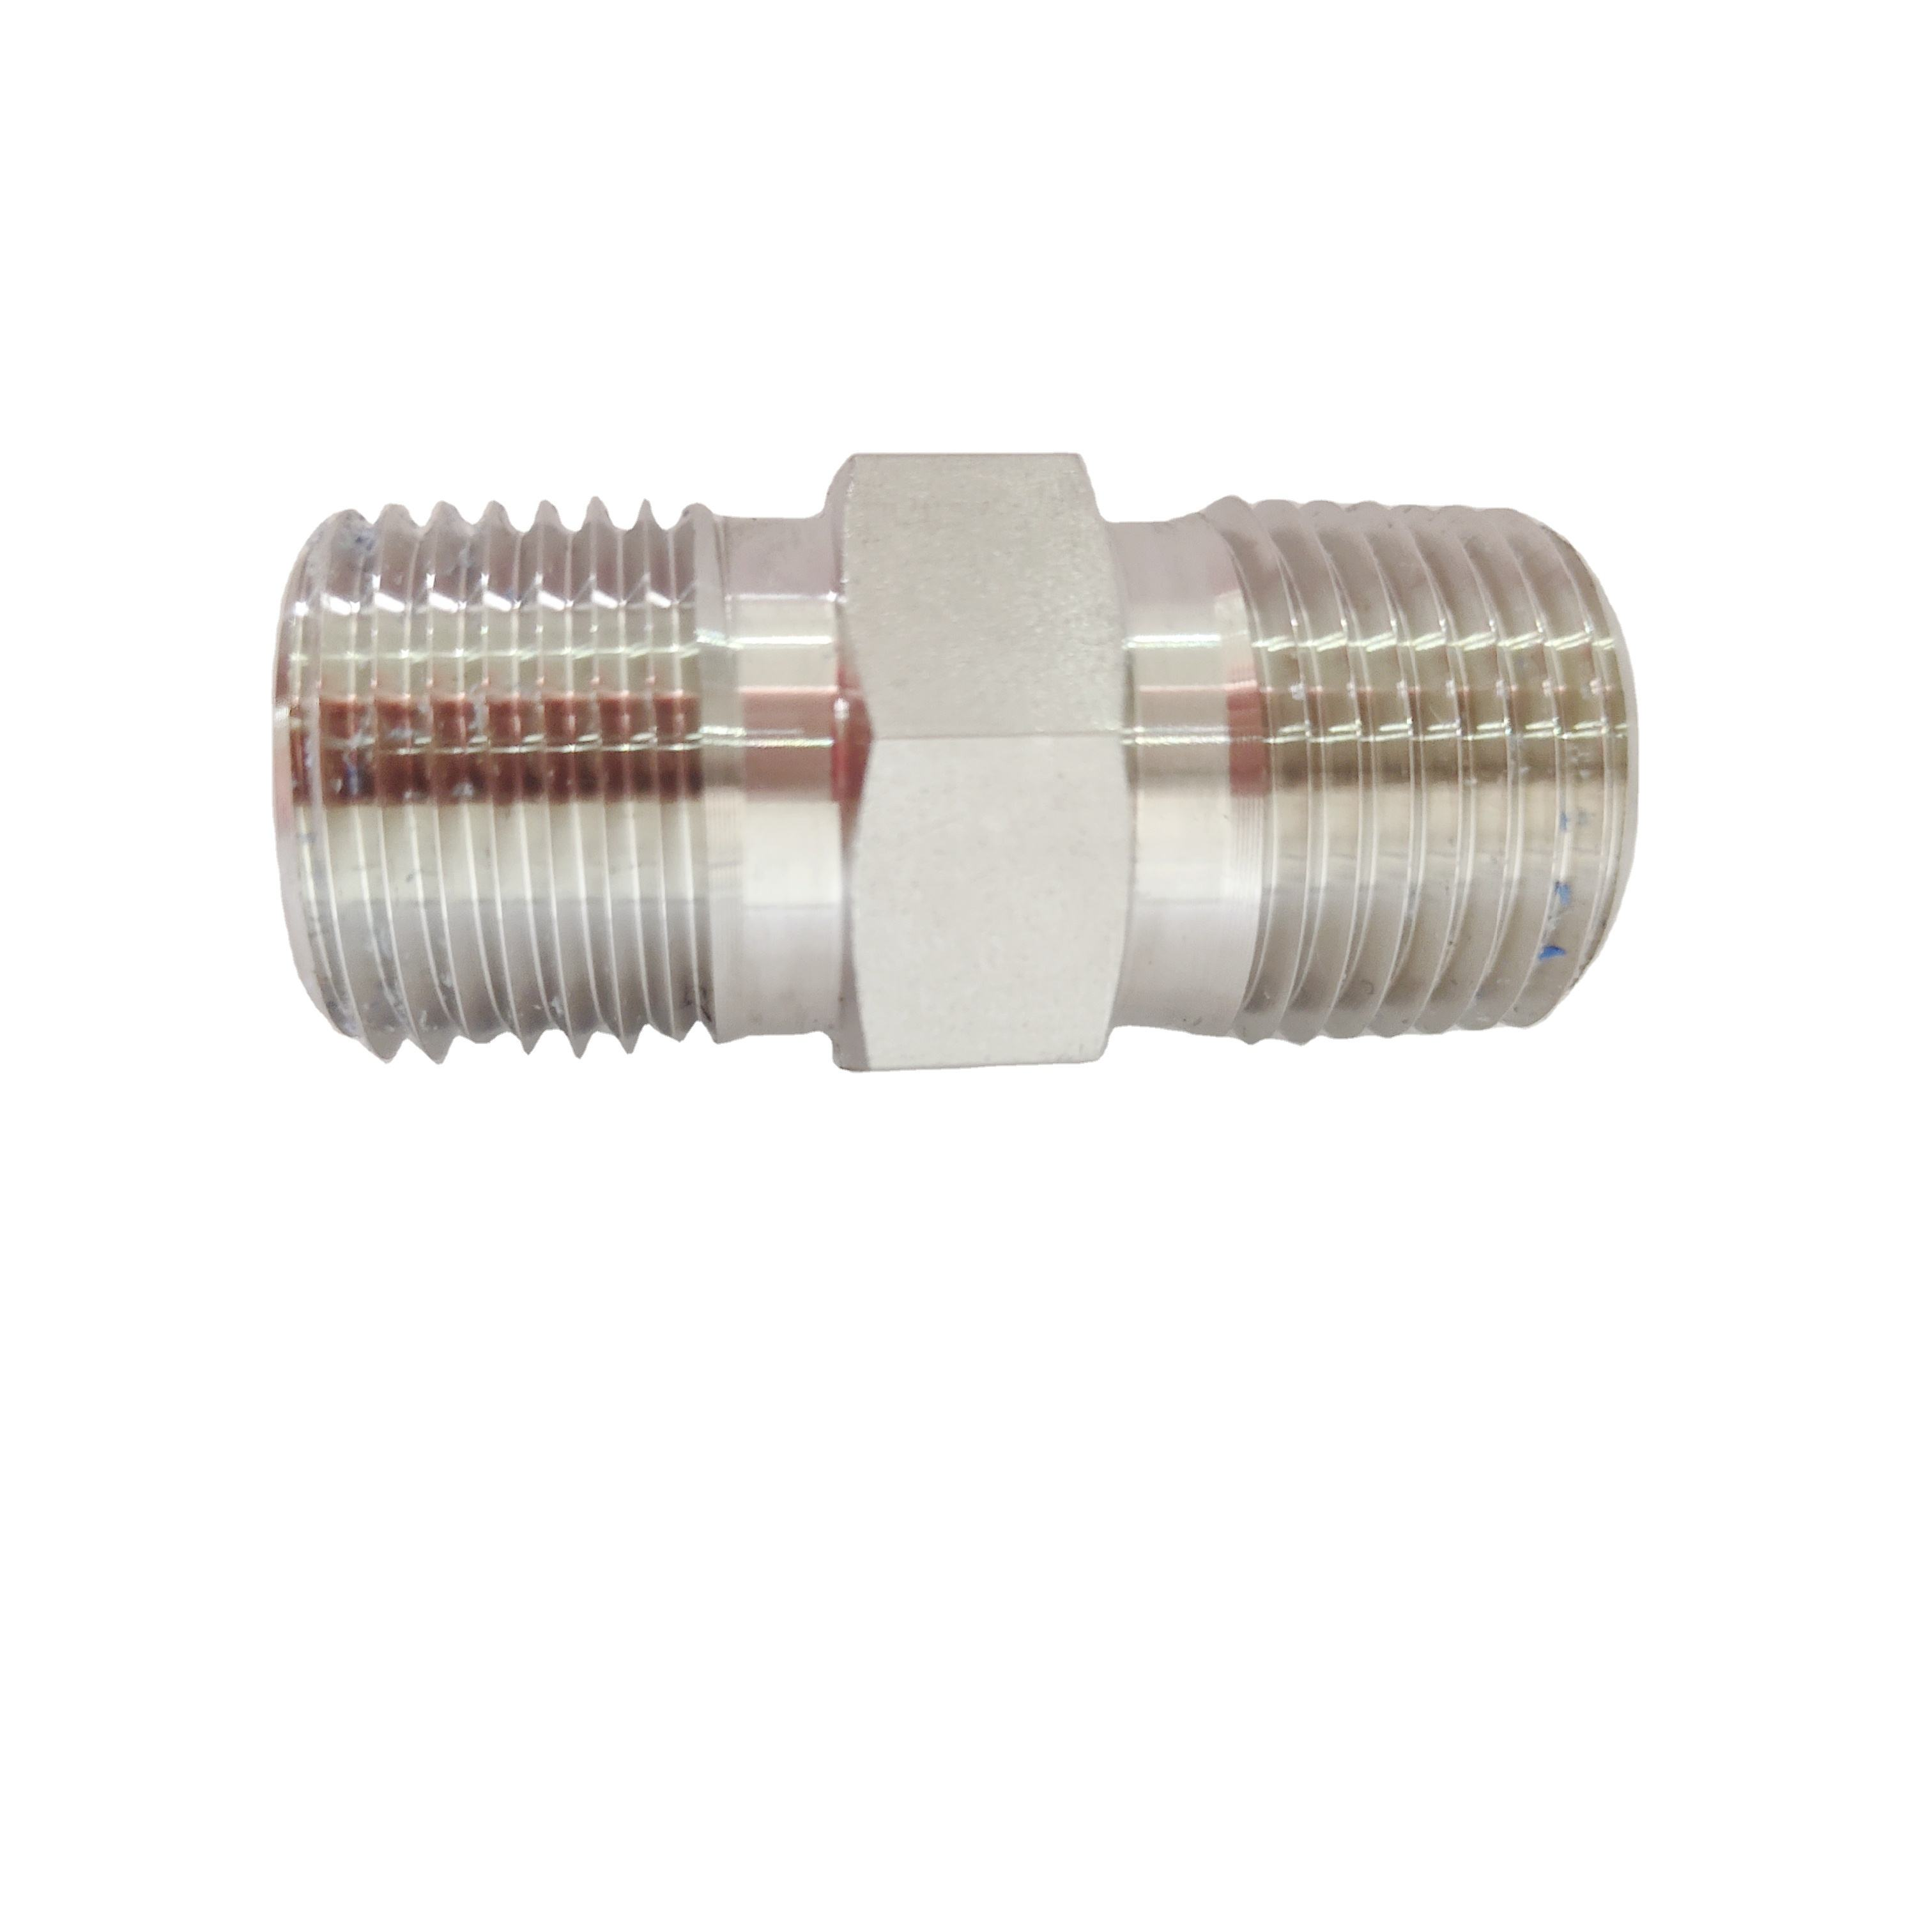 stainless steel NPT hex equal nipple fitting